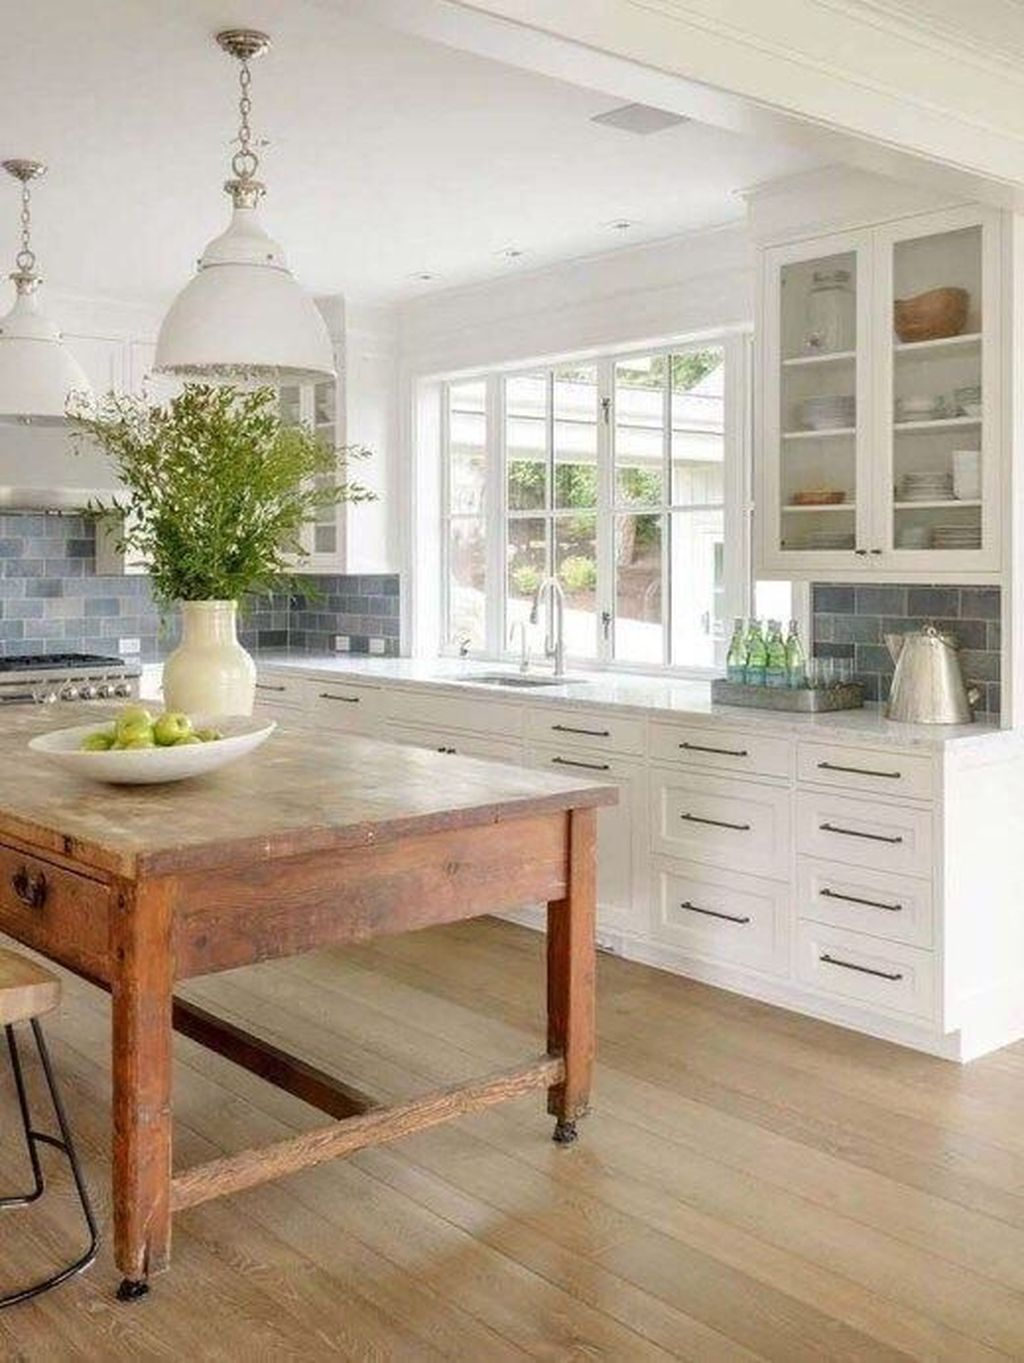 Nice Rustic Farmhouse Kitchen Cabinets Design Ideas 28